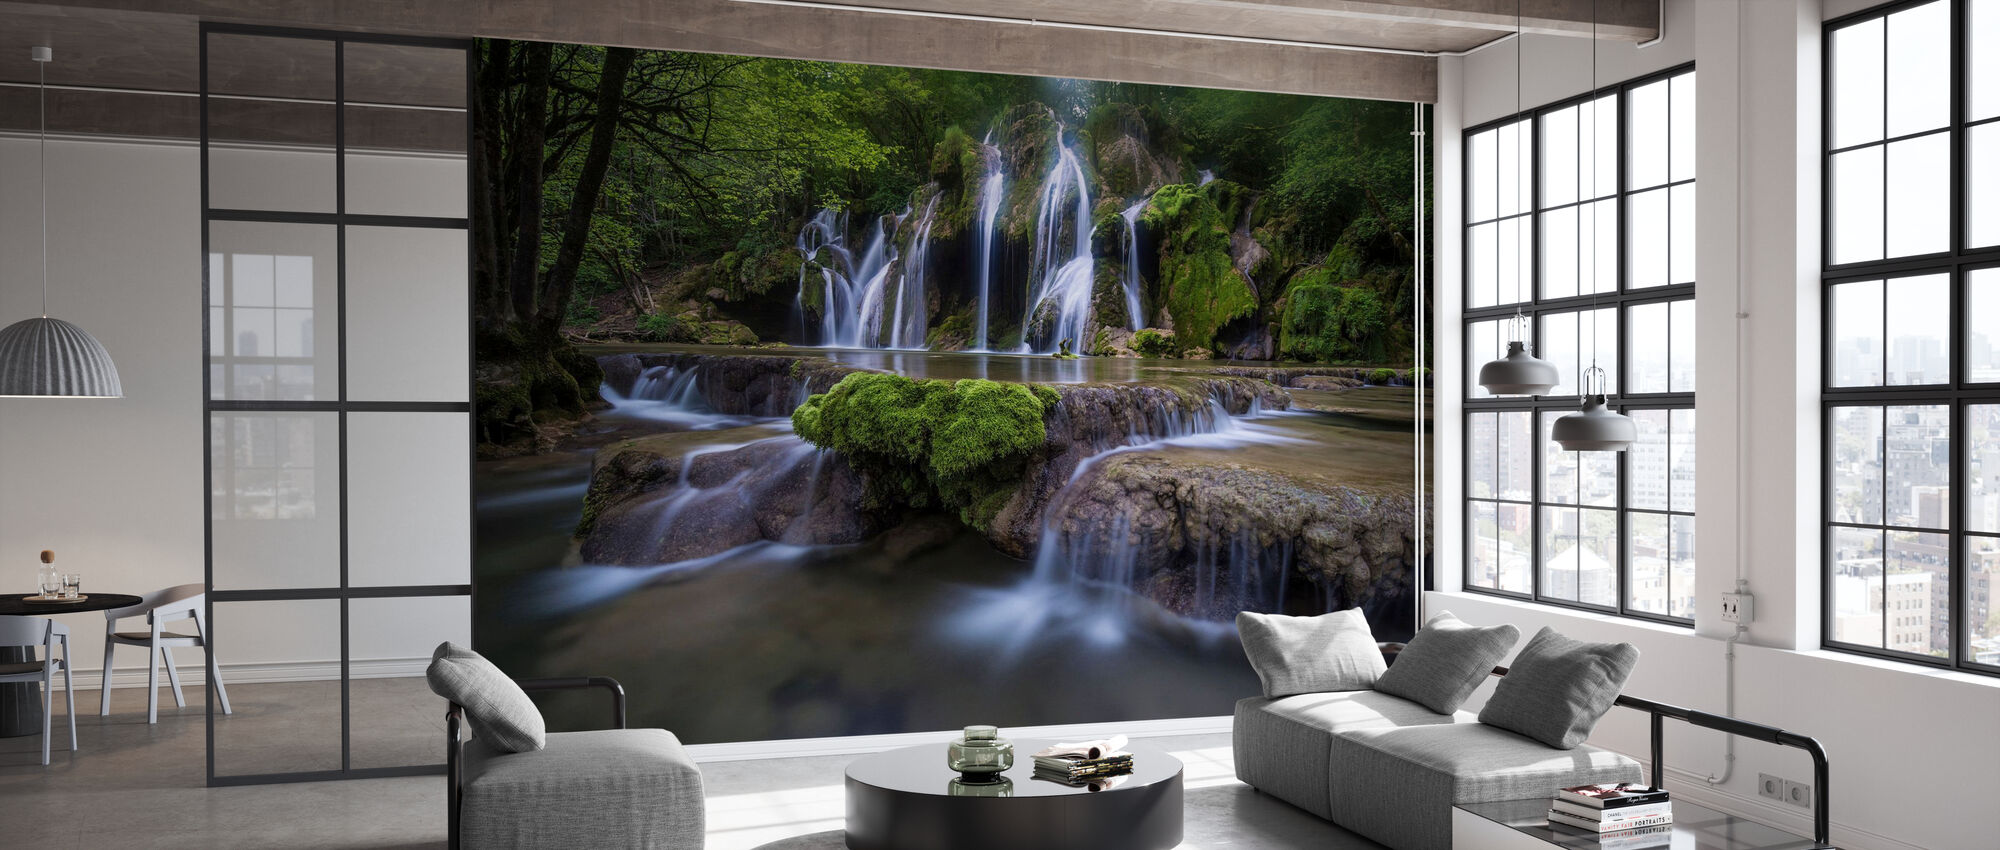 View of La Cascade des Tufs, France, Europe - Wallpaper - Office